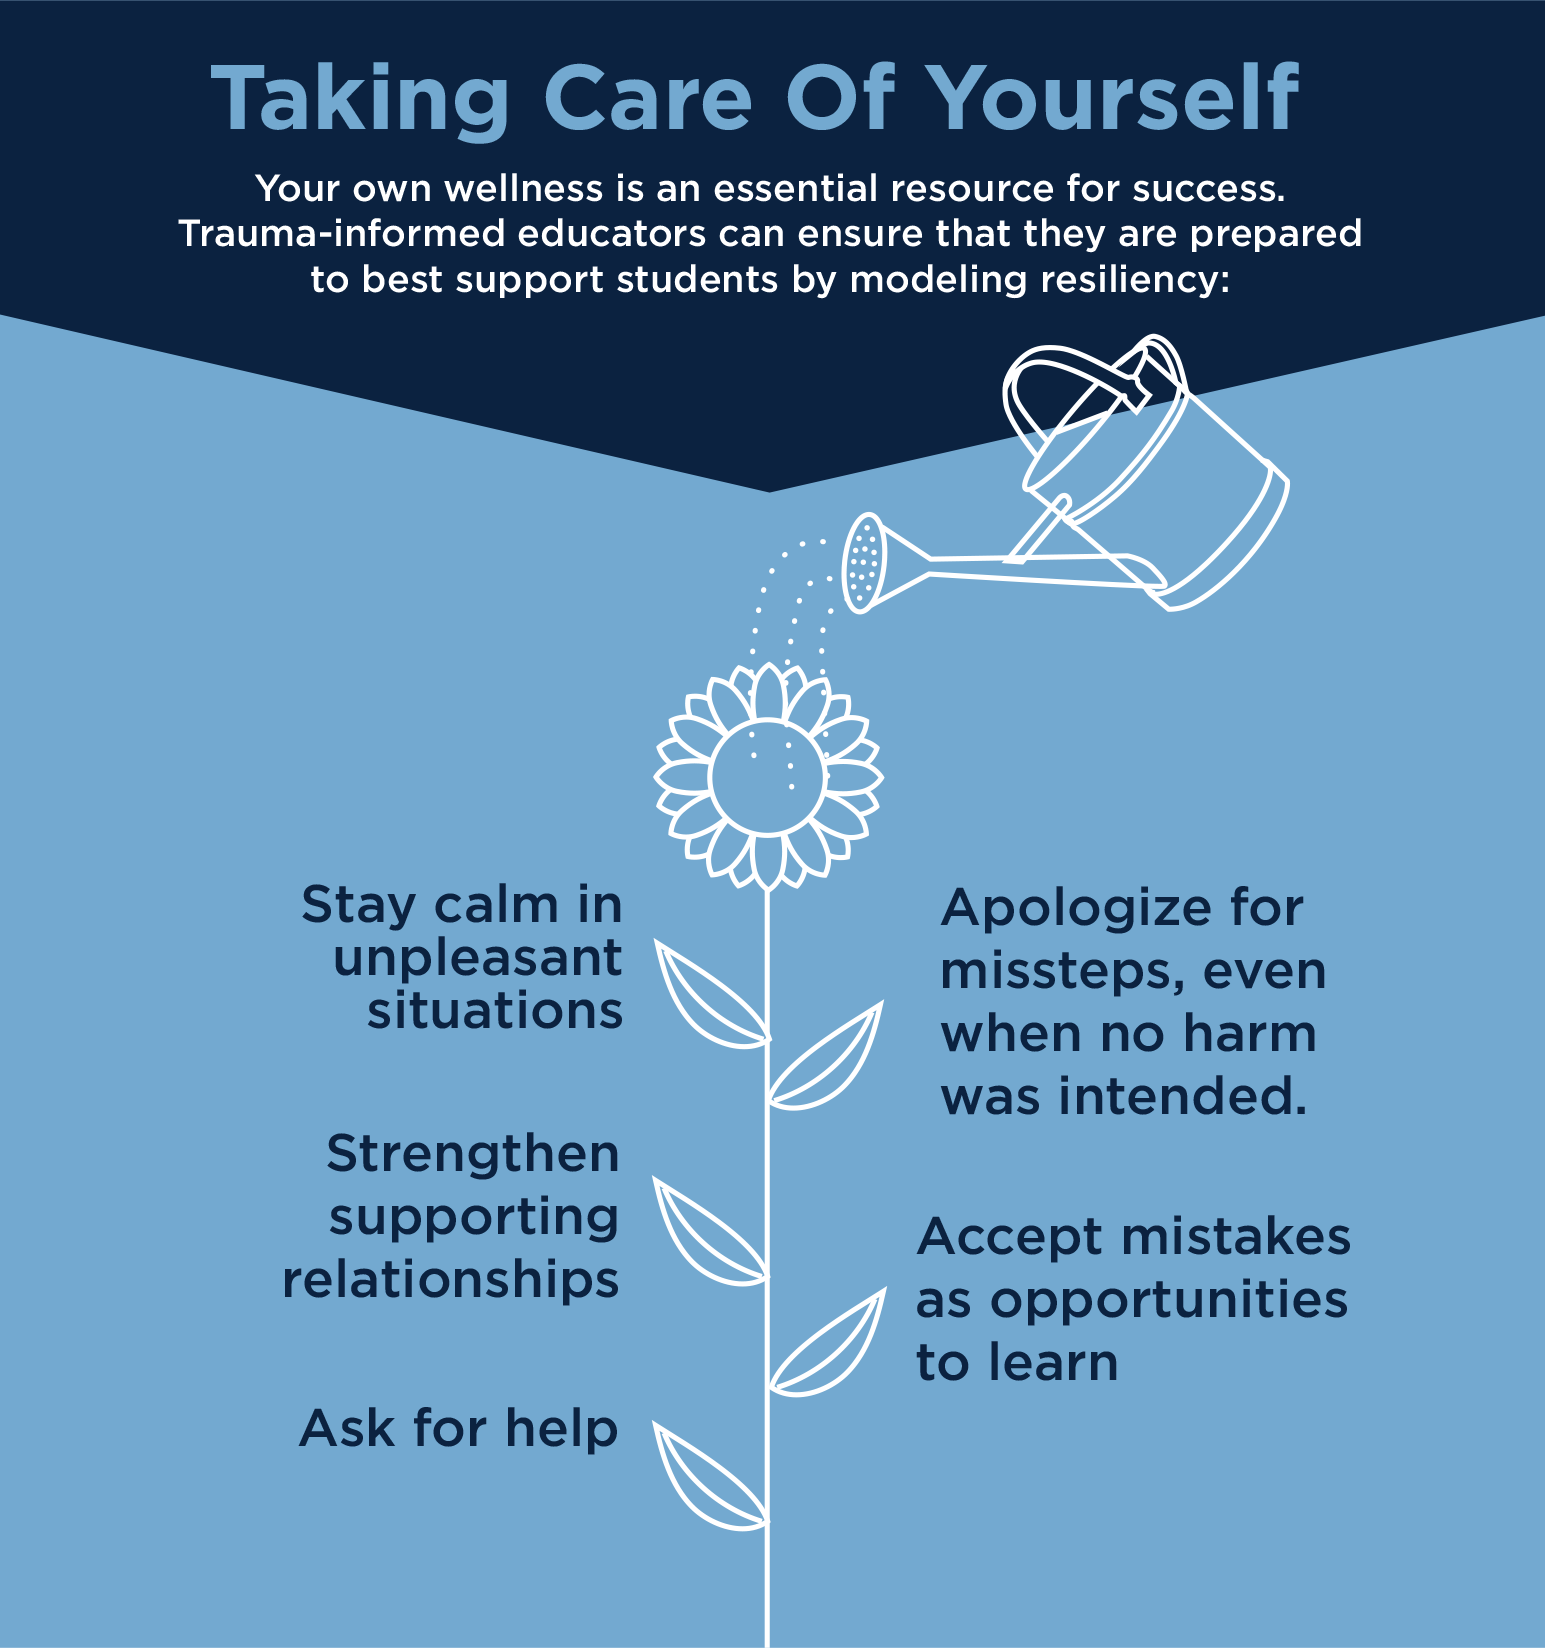 School Personnel Can Help Students Heal from Trauma - image 6